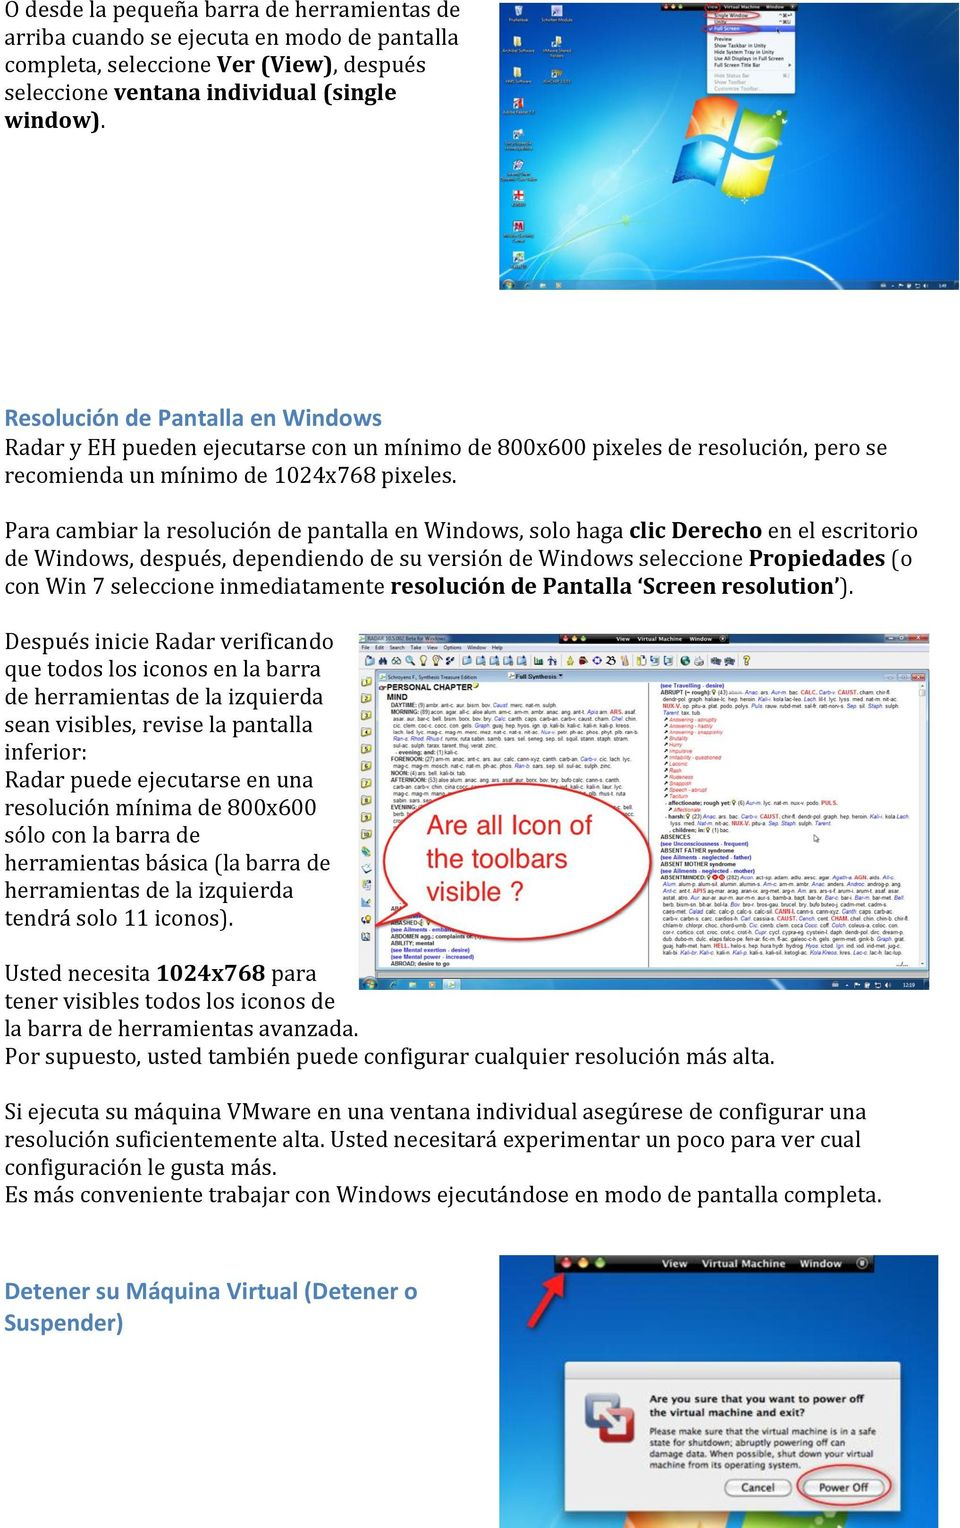 Para cambiar la resolución de pantalla en Windows, solo haga clic Derecho en el escritorio de Windows, después, dependiendo de su versión de Windows seleccione Propiedades (o con Win 7 seleccione